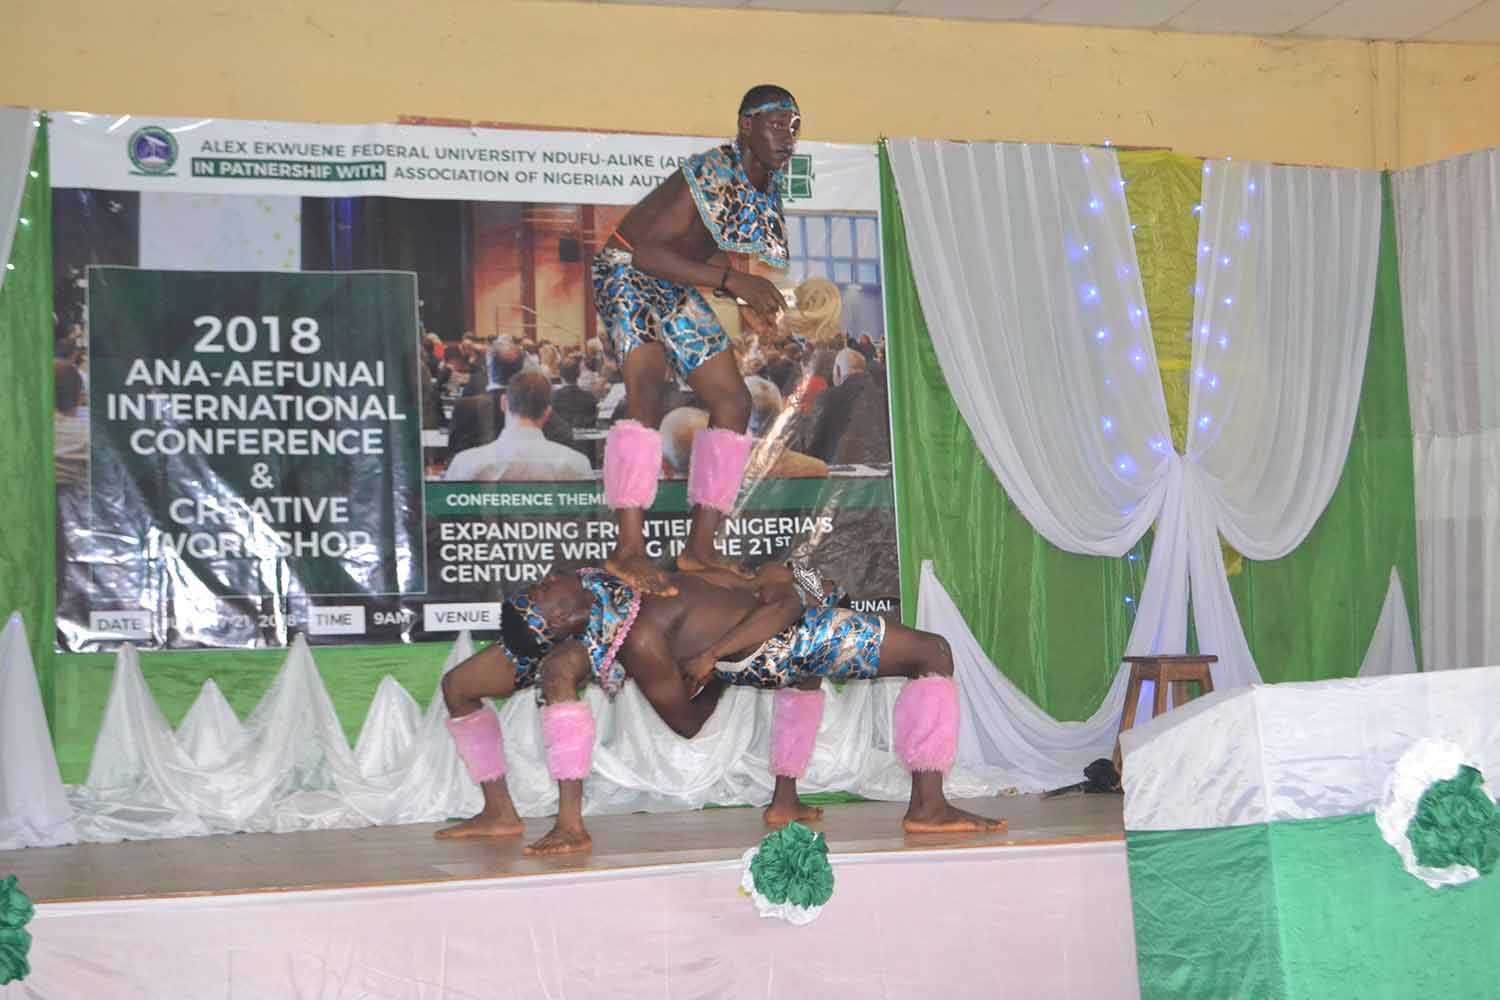 Performers during the 2018 ANA/FUNAI conference